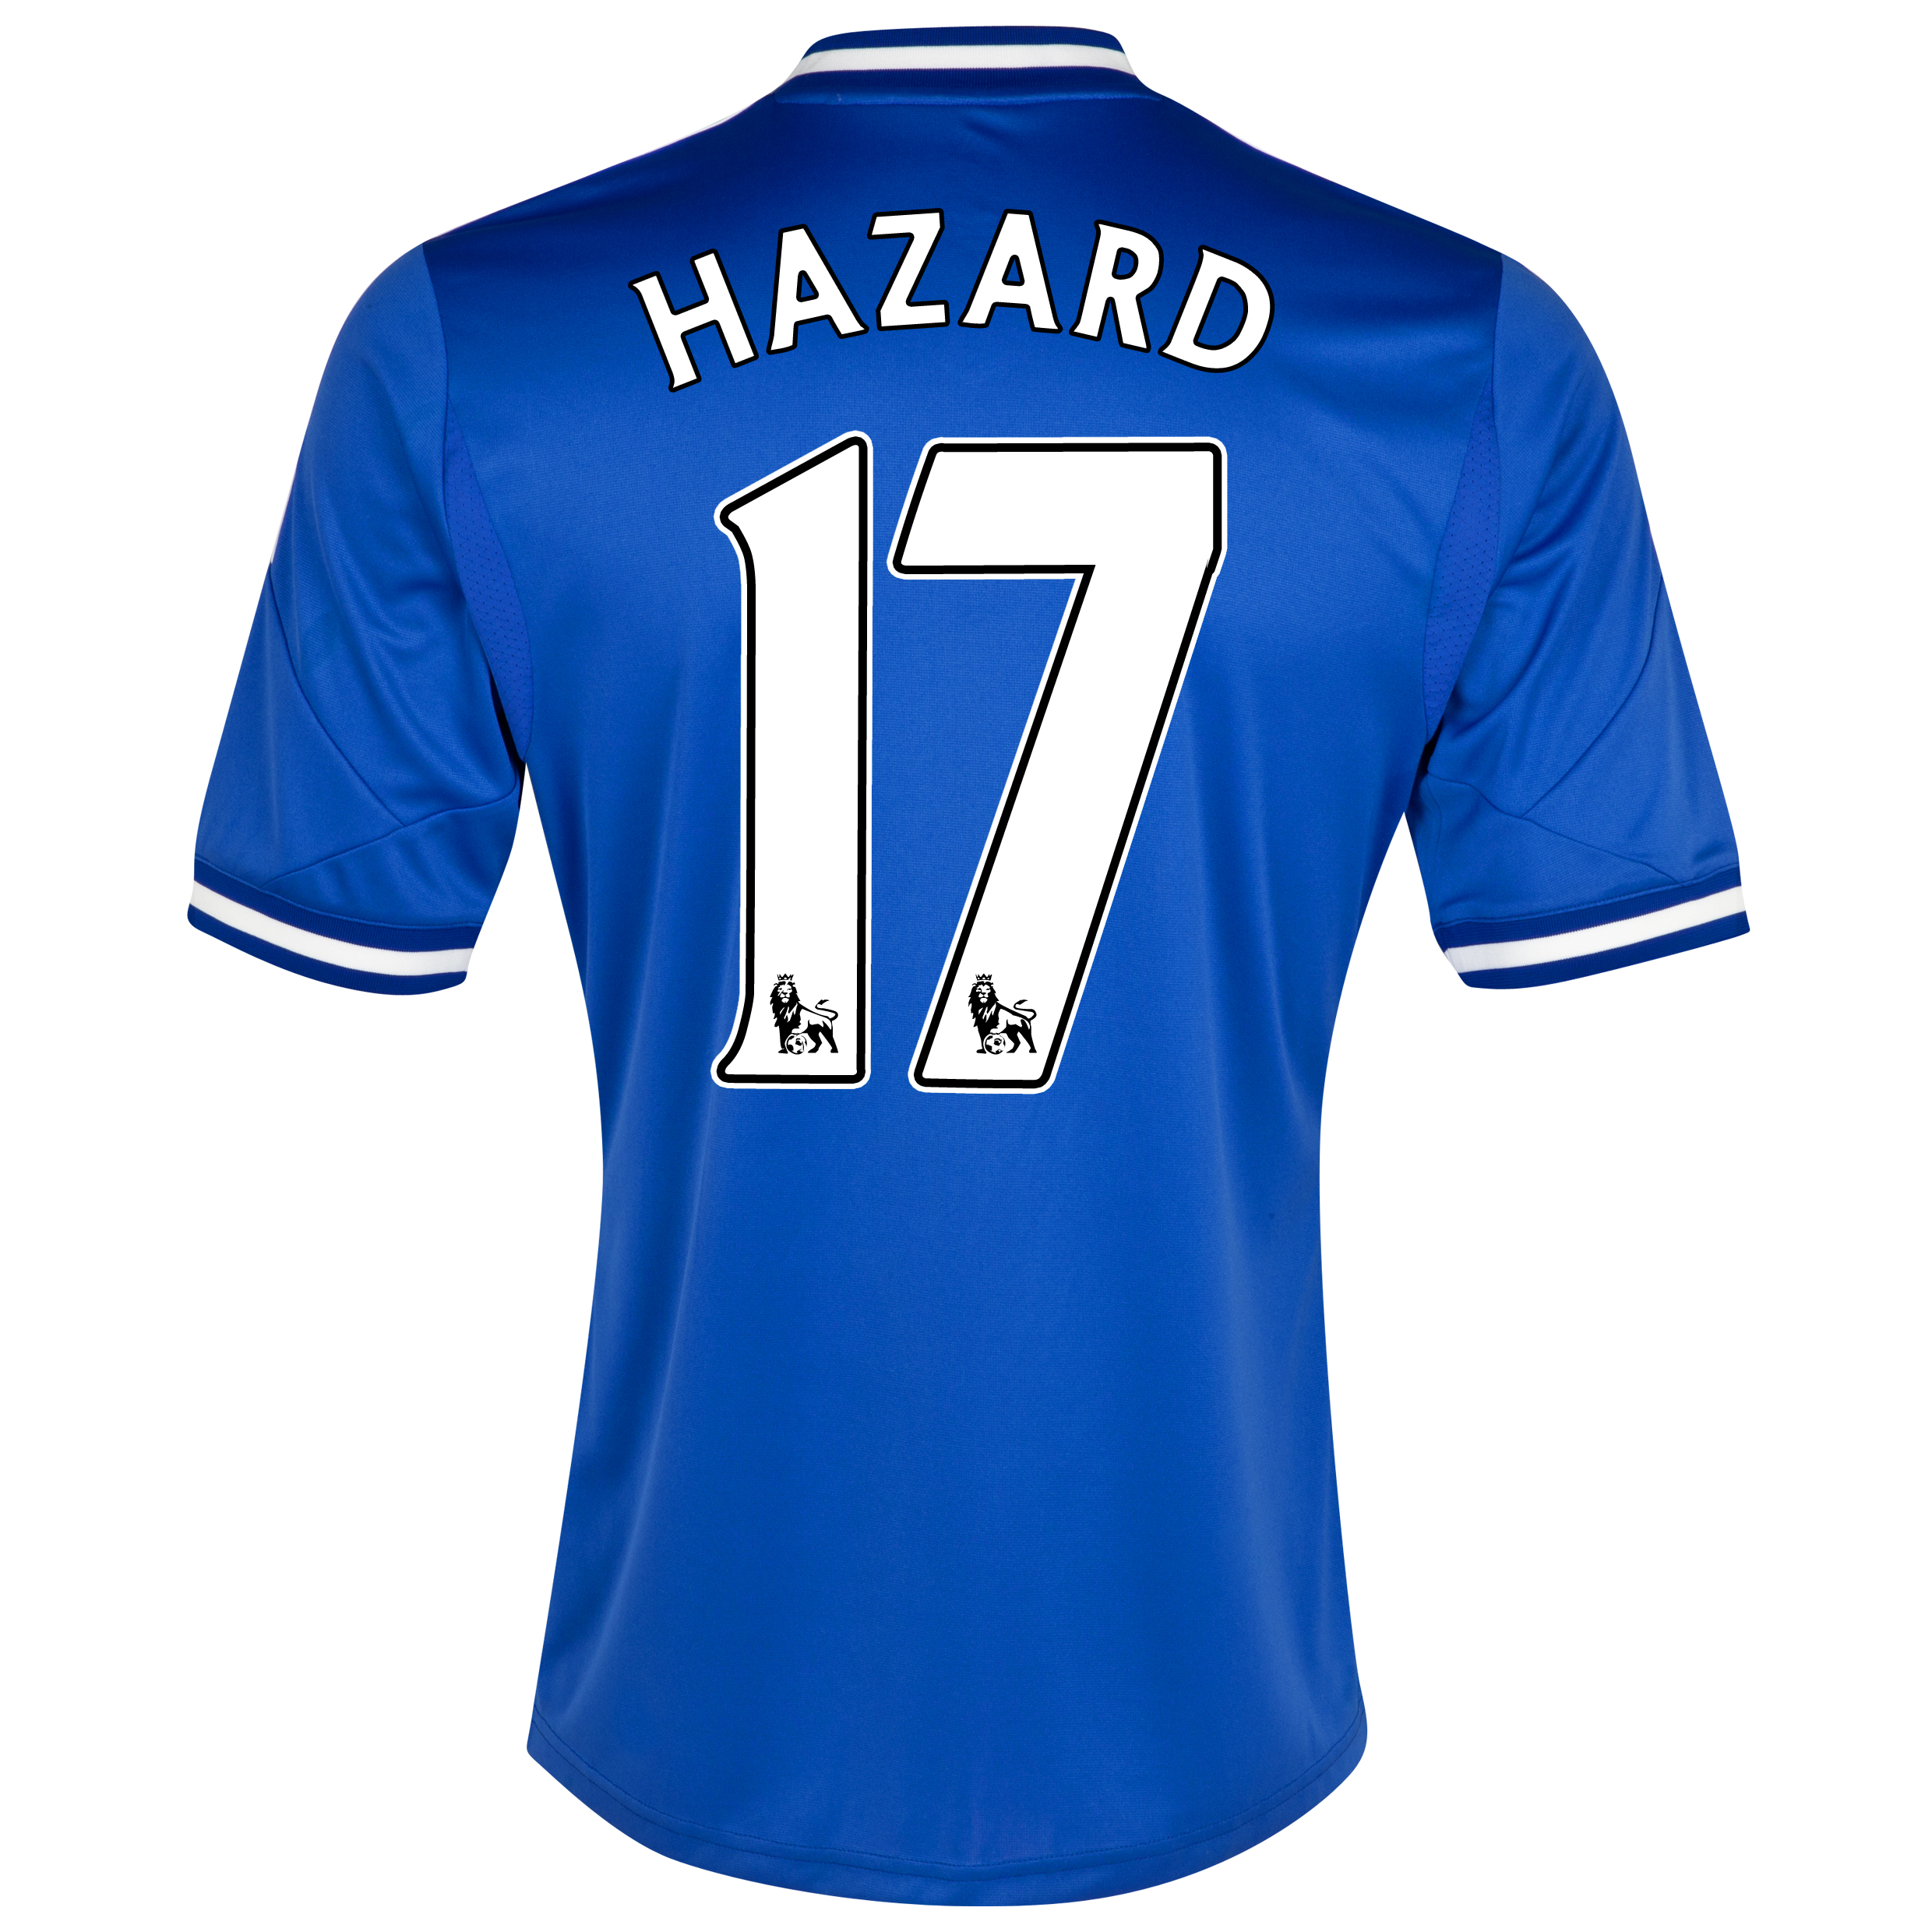 Chelsea Home Shirt 2013/14 - Kids with Hazard 17 printing